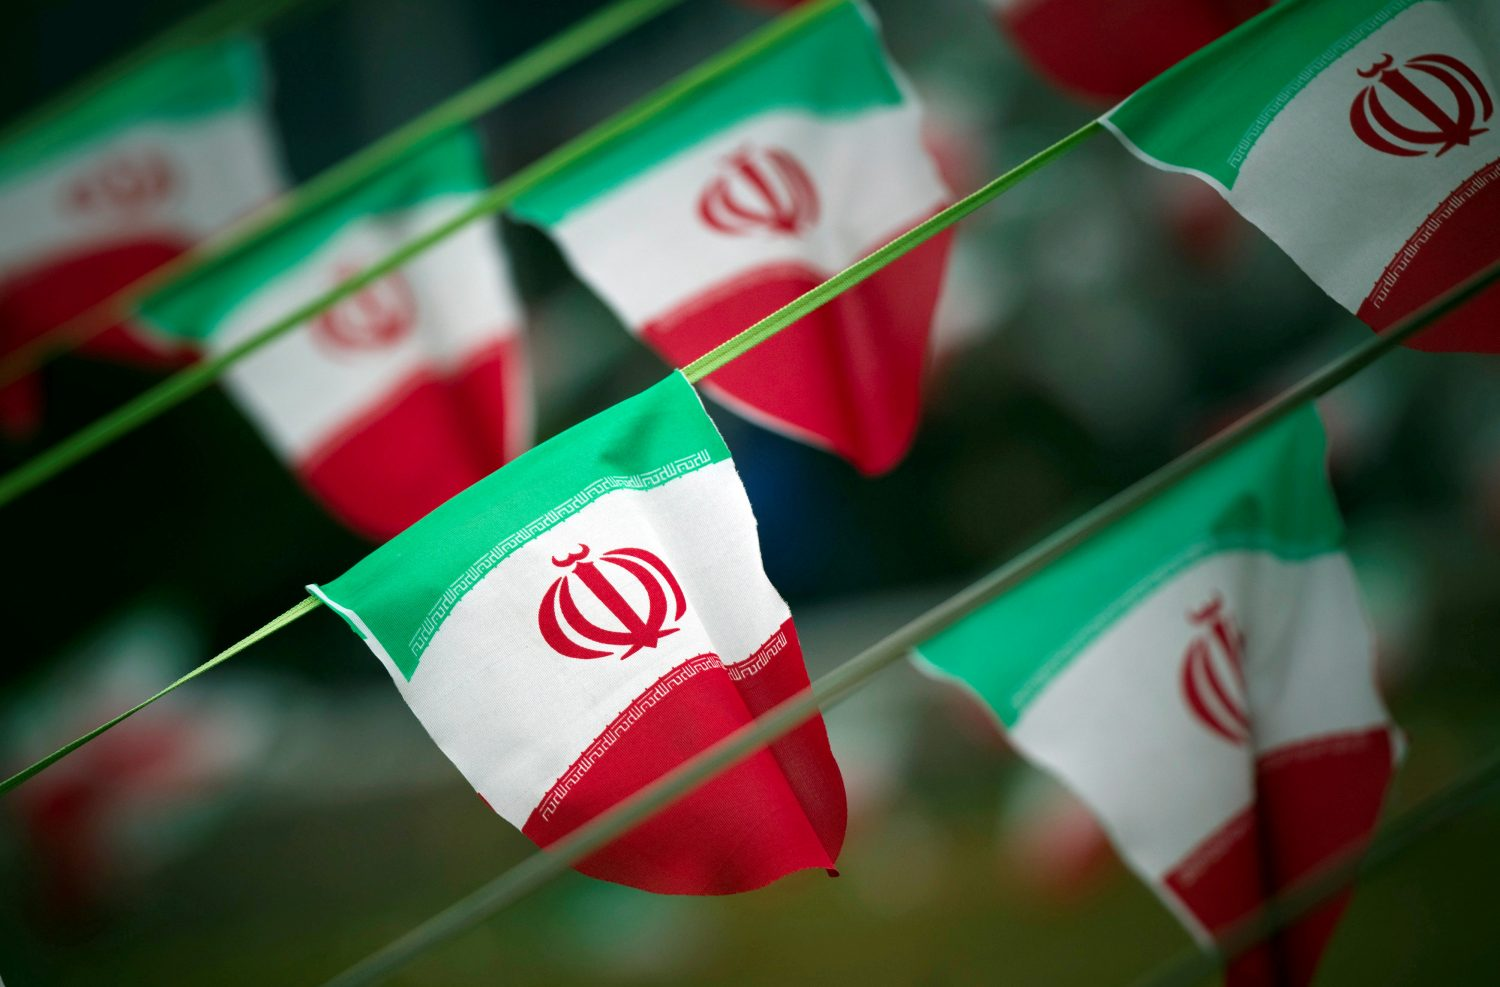 FILE PHOTO: Iran's national flags are seen on a square in Tehran February 10, 2012, a day before the anniversary of the Islamic Revolution. REUTERS/Morteza Nikoubazl